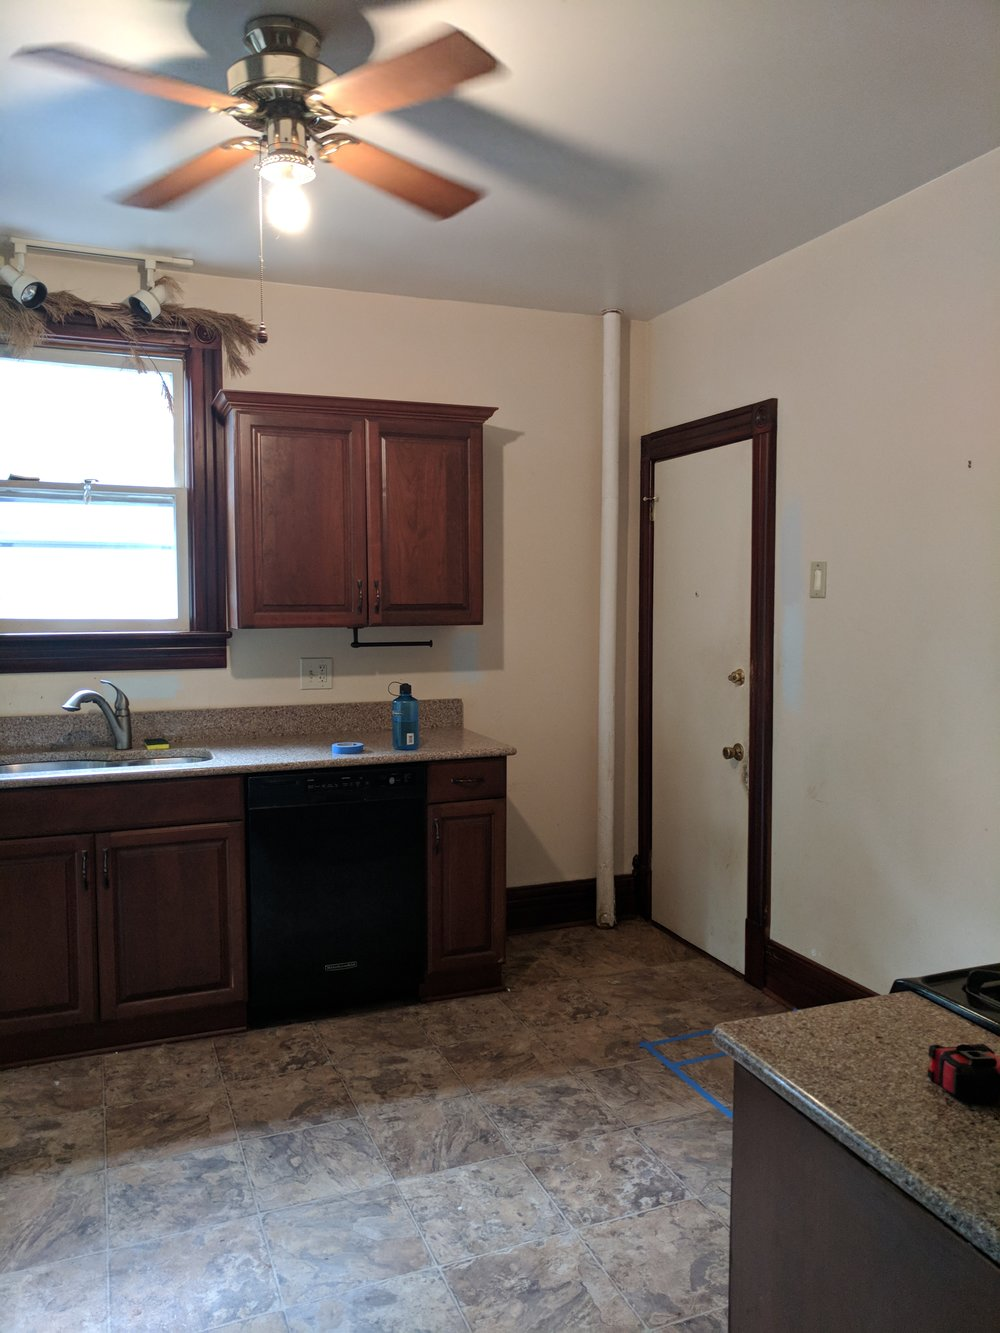 SOUTH-KITCHEN-NJ-RENOVATION-BEFORE.jpg